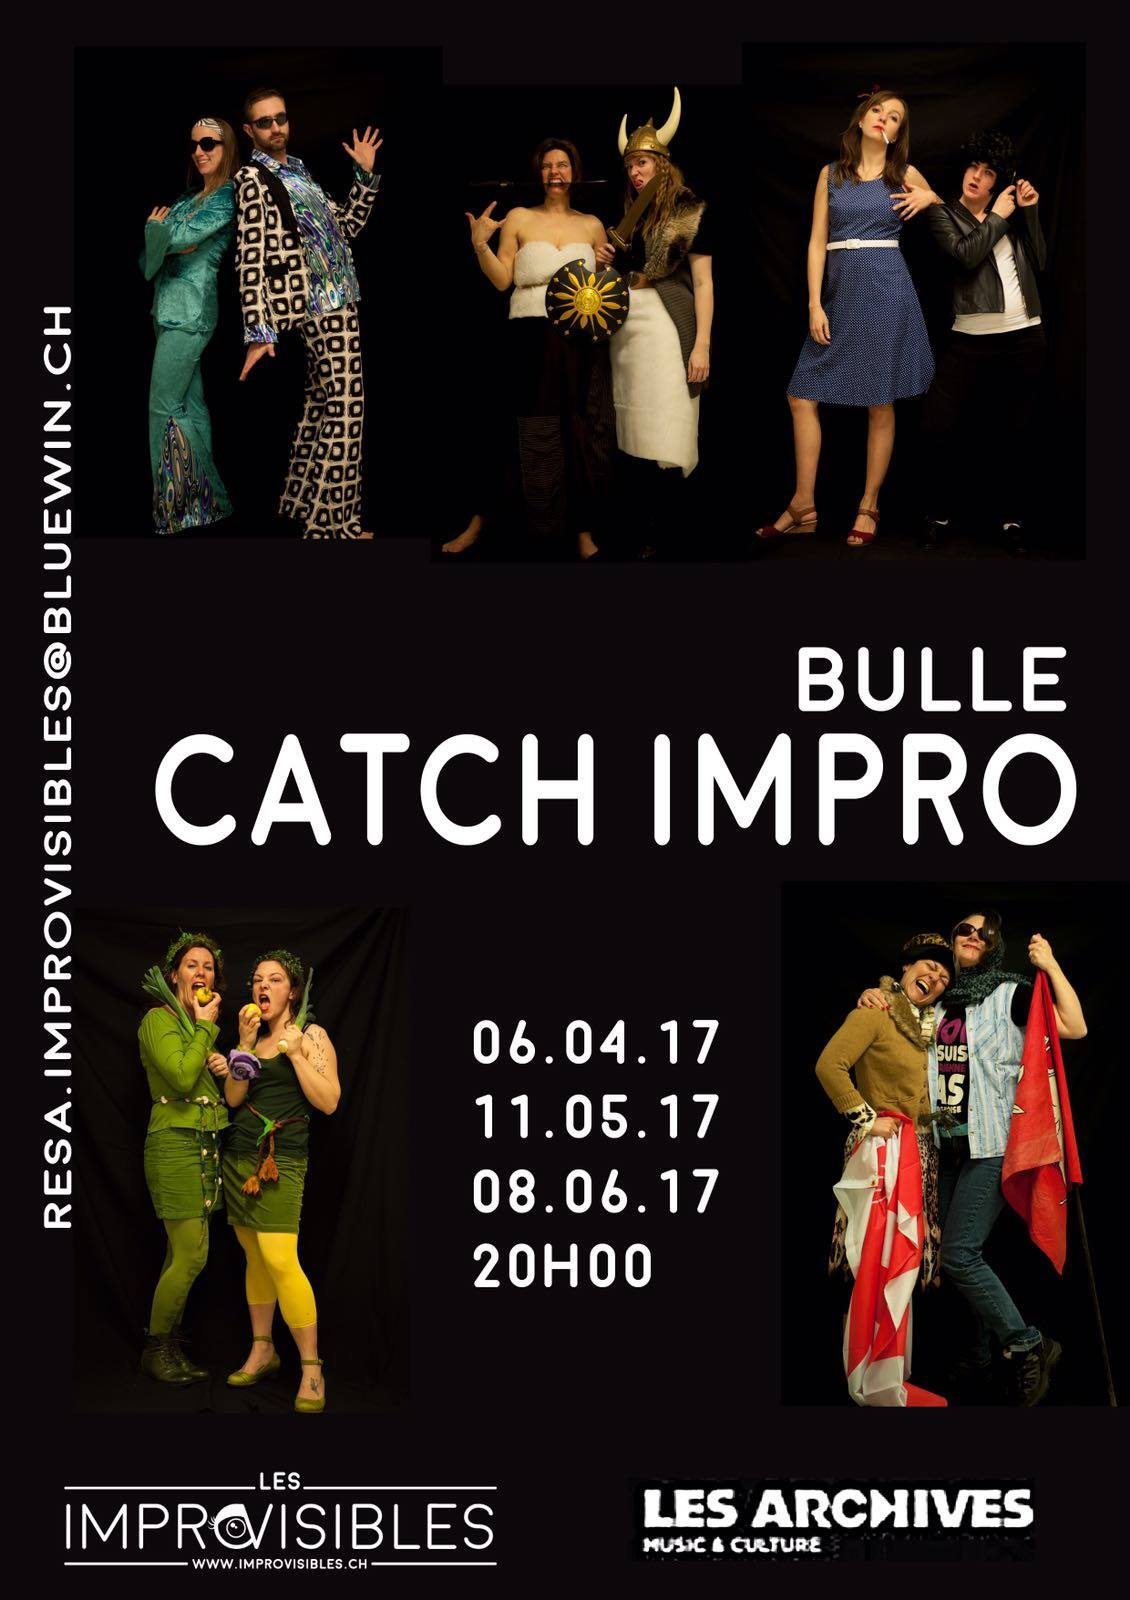 Catch Impro – Demi finale 2: 11.05.2017